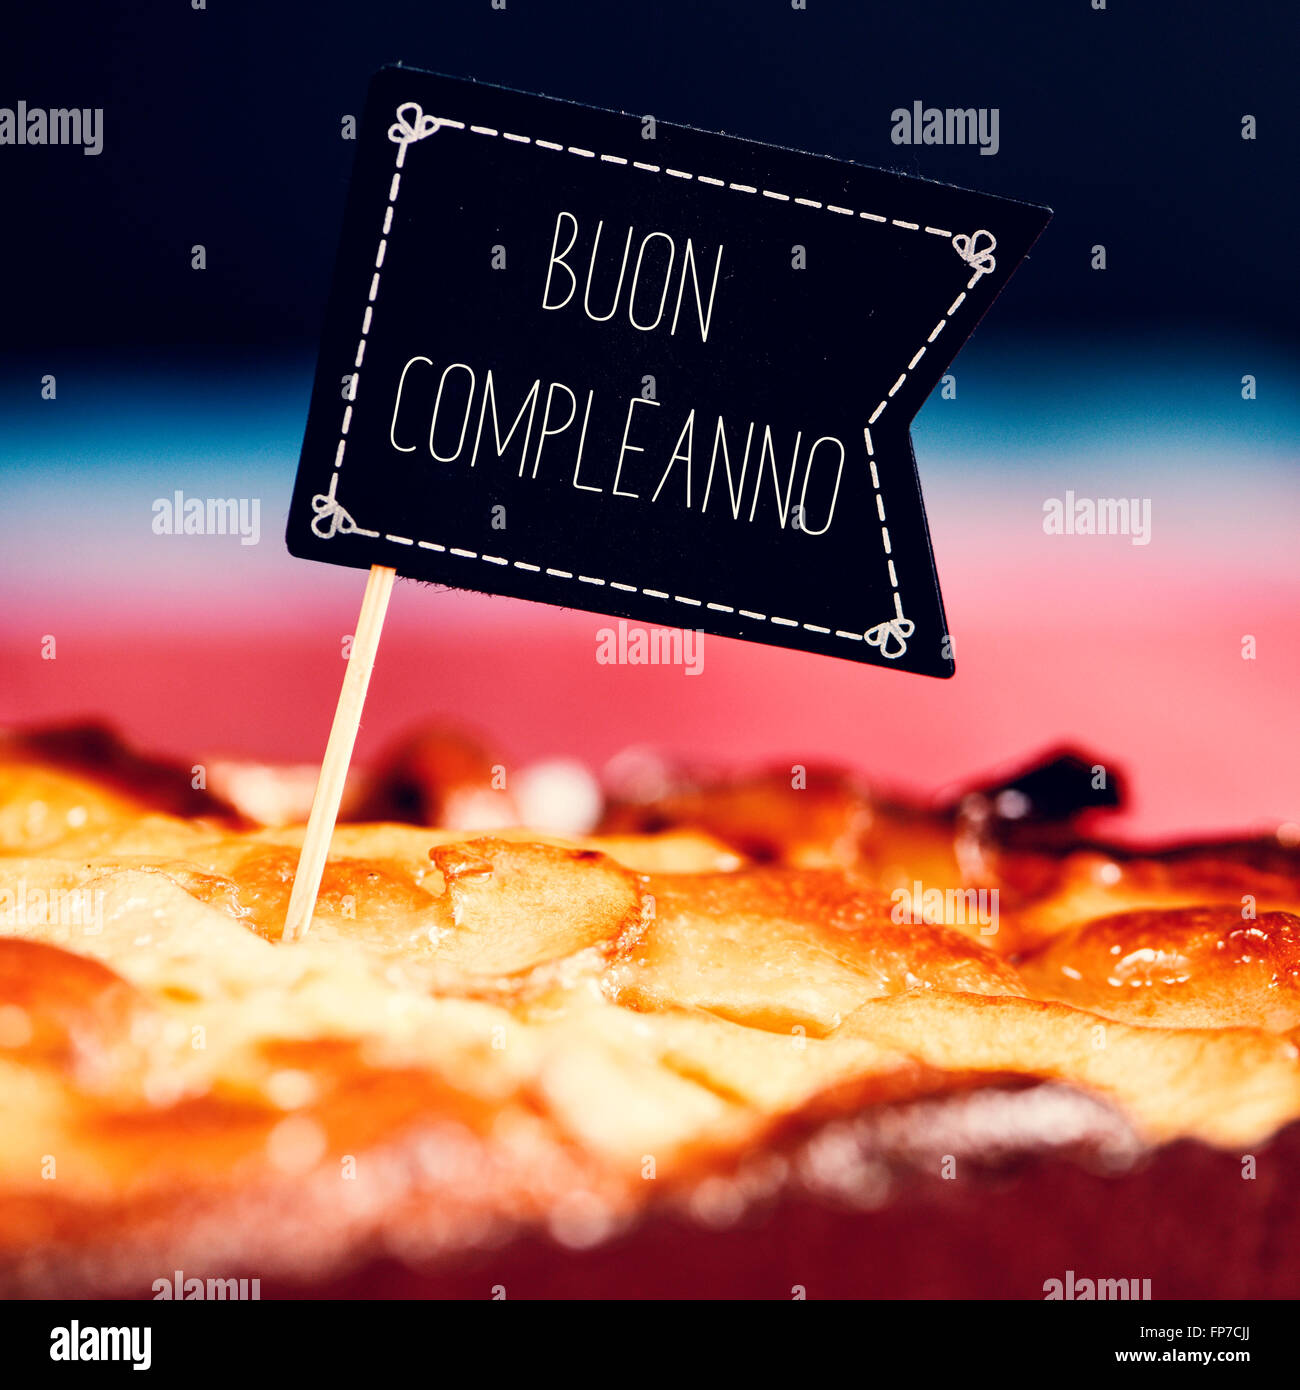 Closeup Of A Black Flag Shaped Signboard With The Text Buon Compleanno Happy Birthday